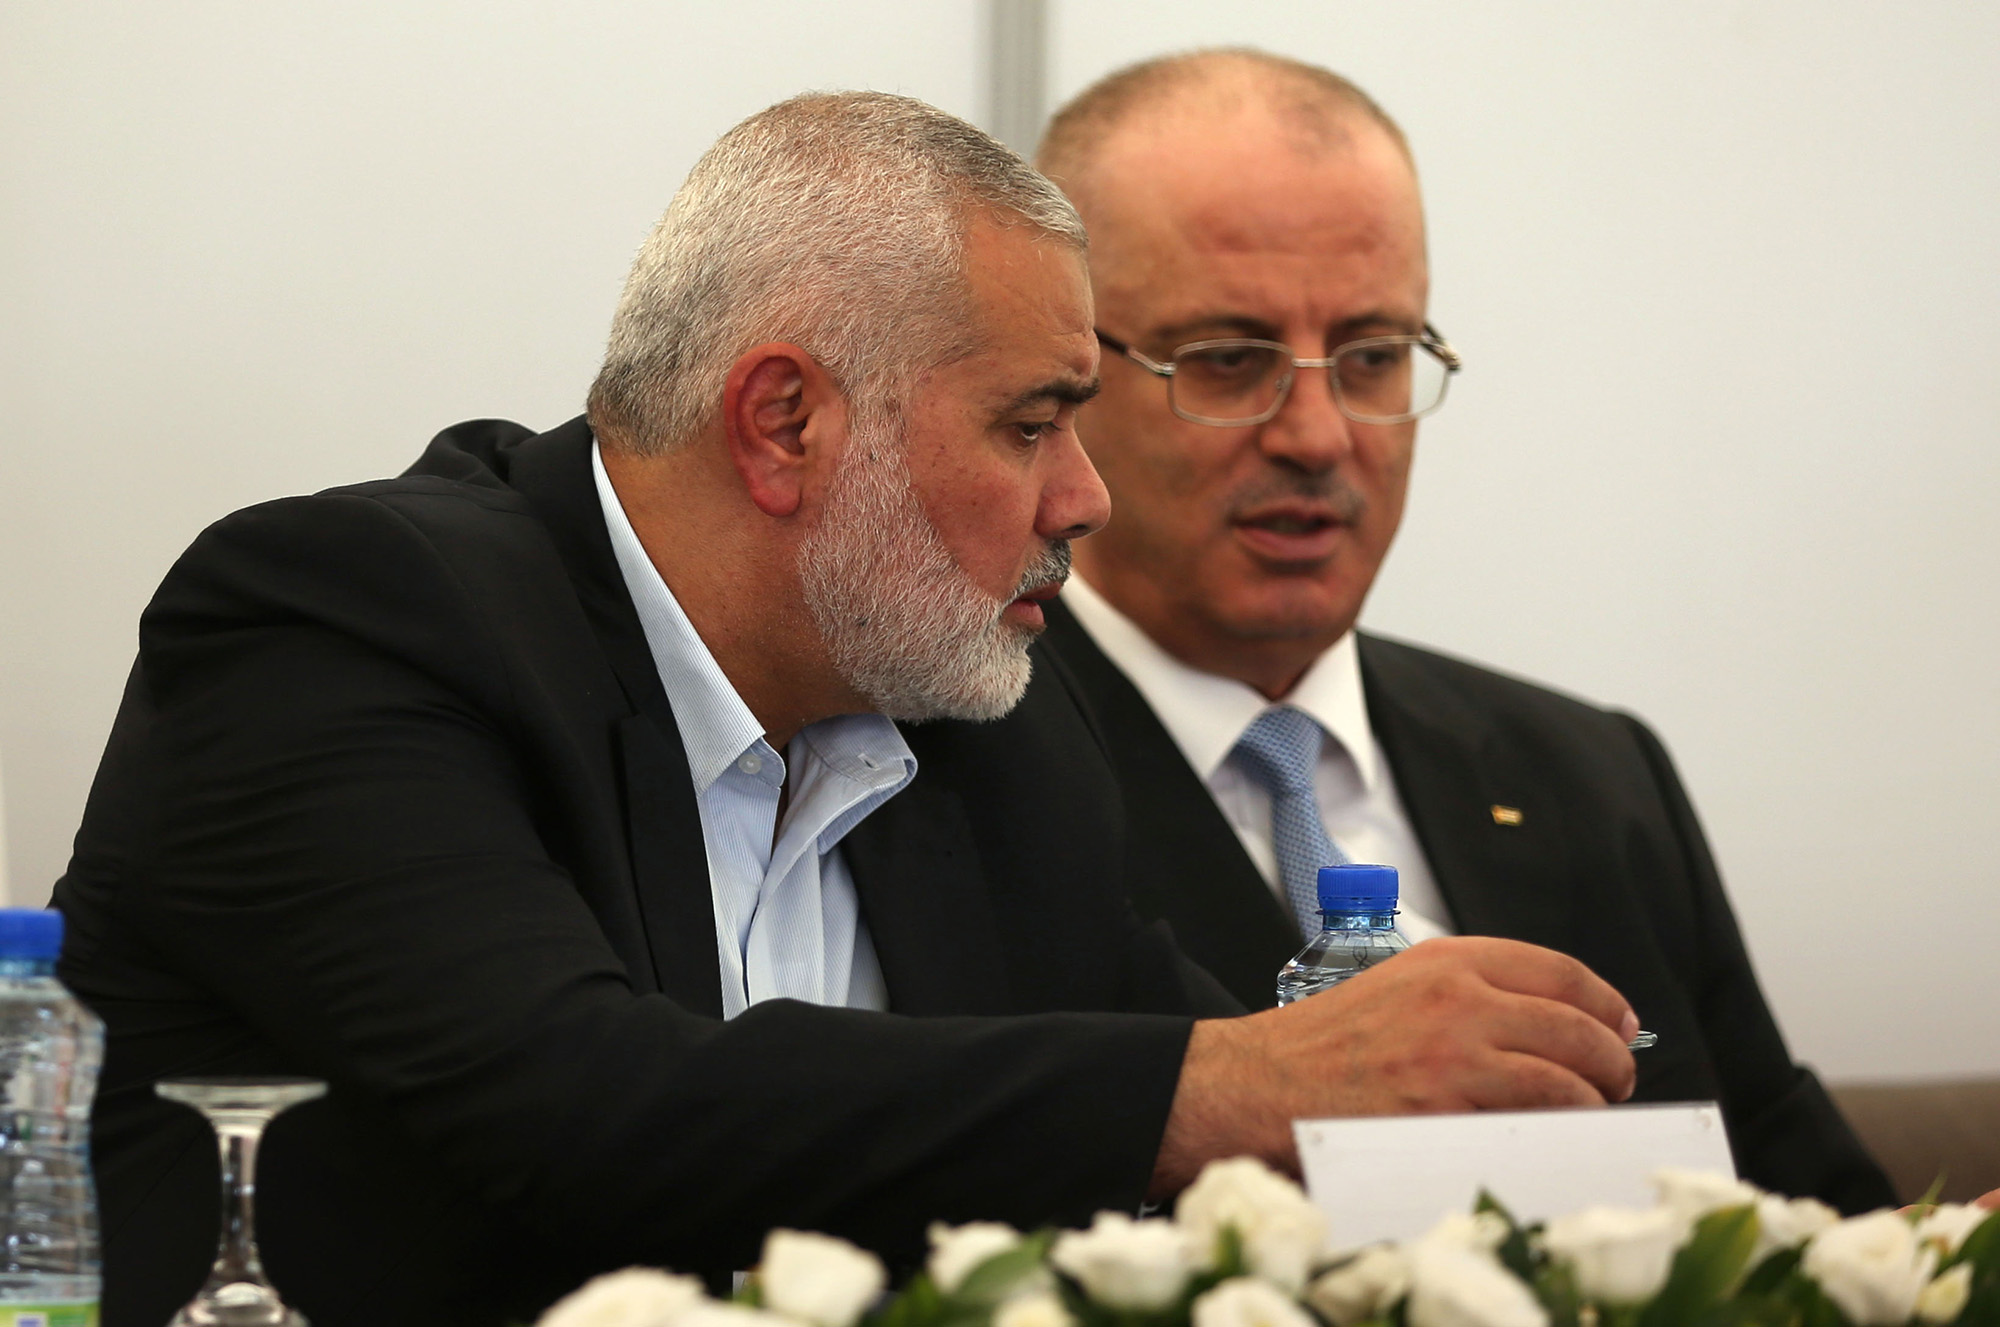 Israel sets conditions on negotiating with Palestinian unity government